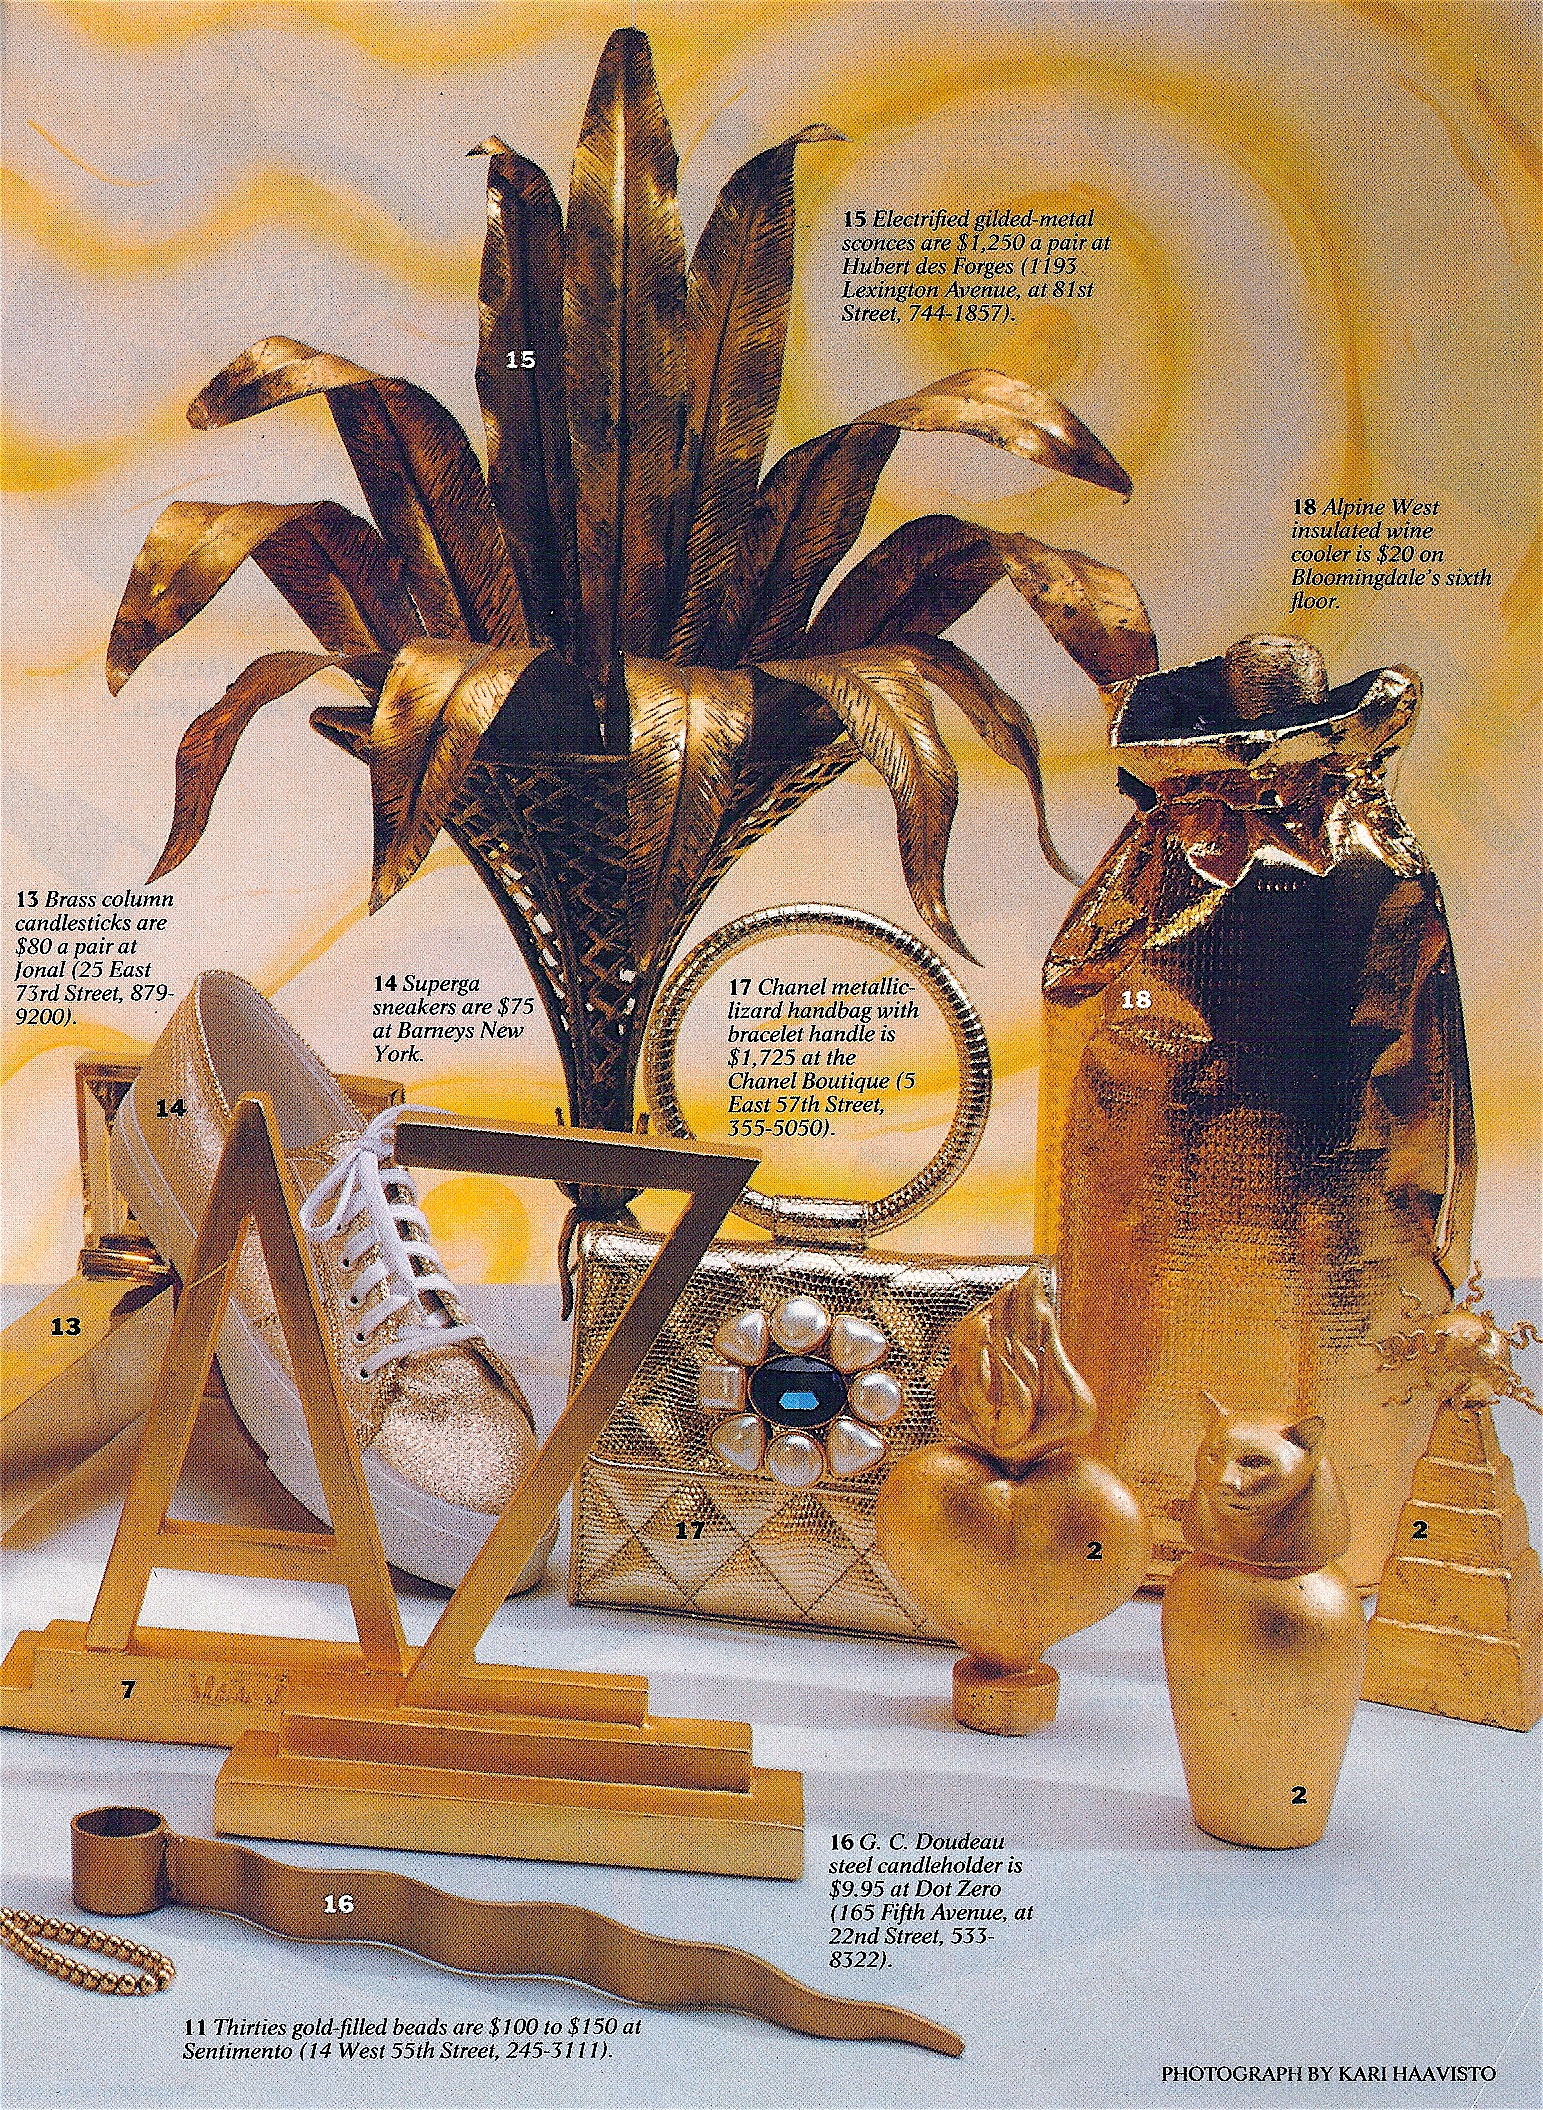 Coffin & King Press - Coffin & King Gilded Perfume Bottles featured in New York Magazine